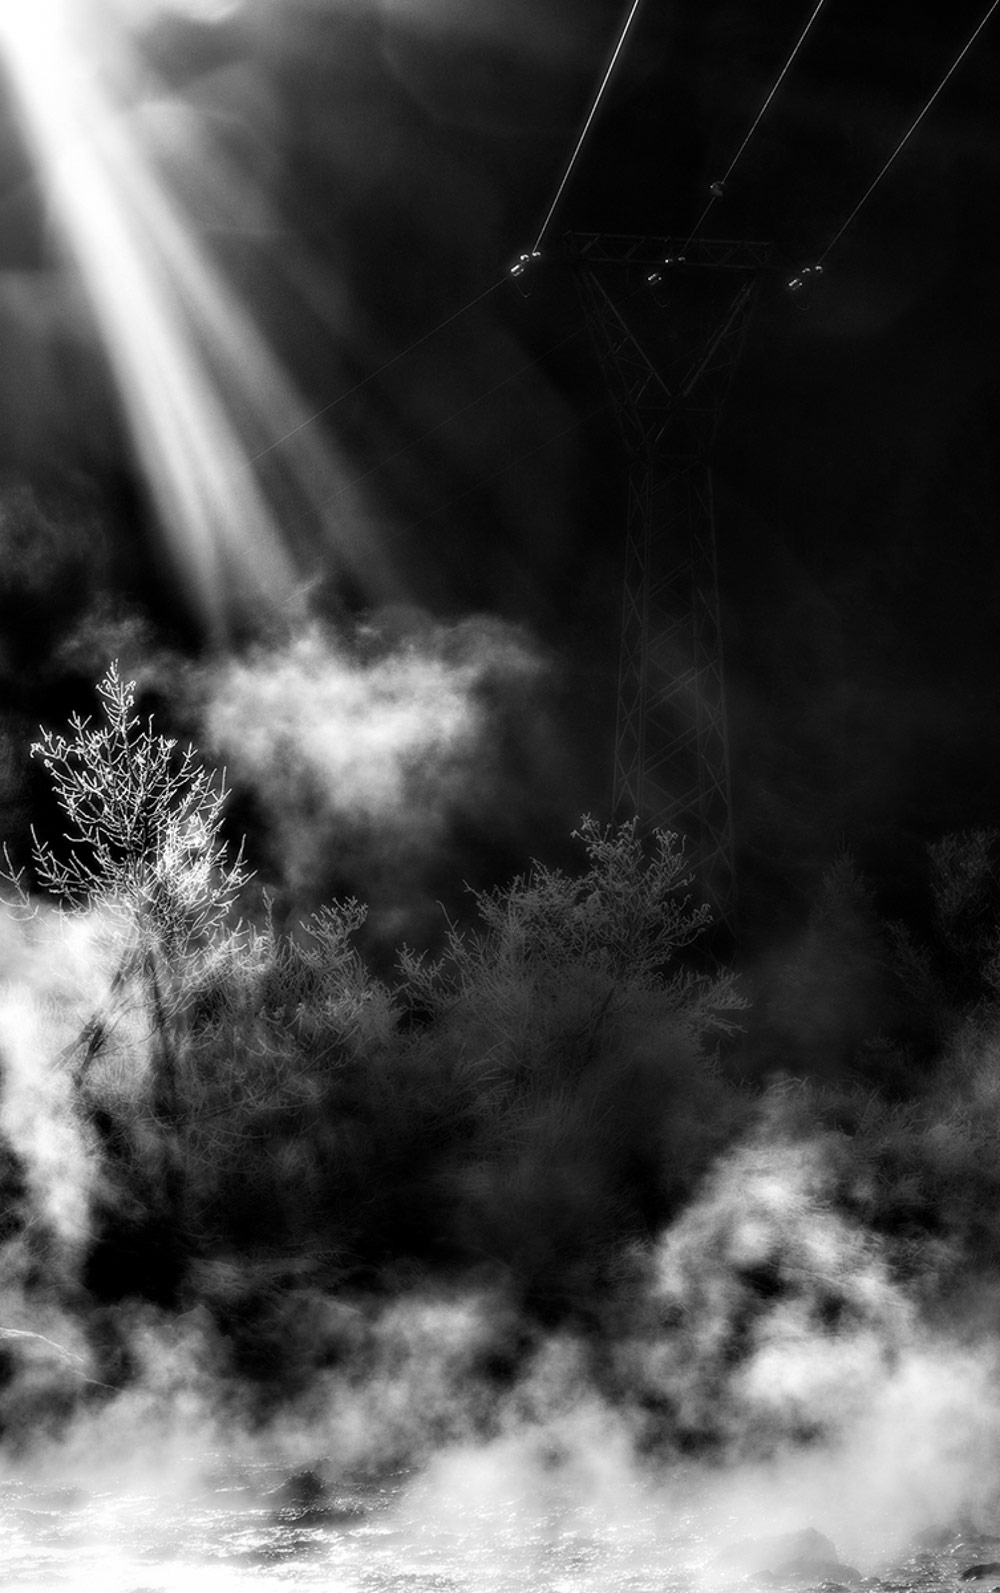 Graphisms of winter lights in Valcellina, © Stefano CIOL, 1st Place, Professional - Fine Art and Open, Zebra Awards - TZIPAC Black and White Photographer of the Year